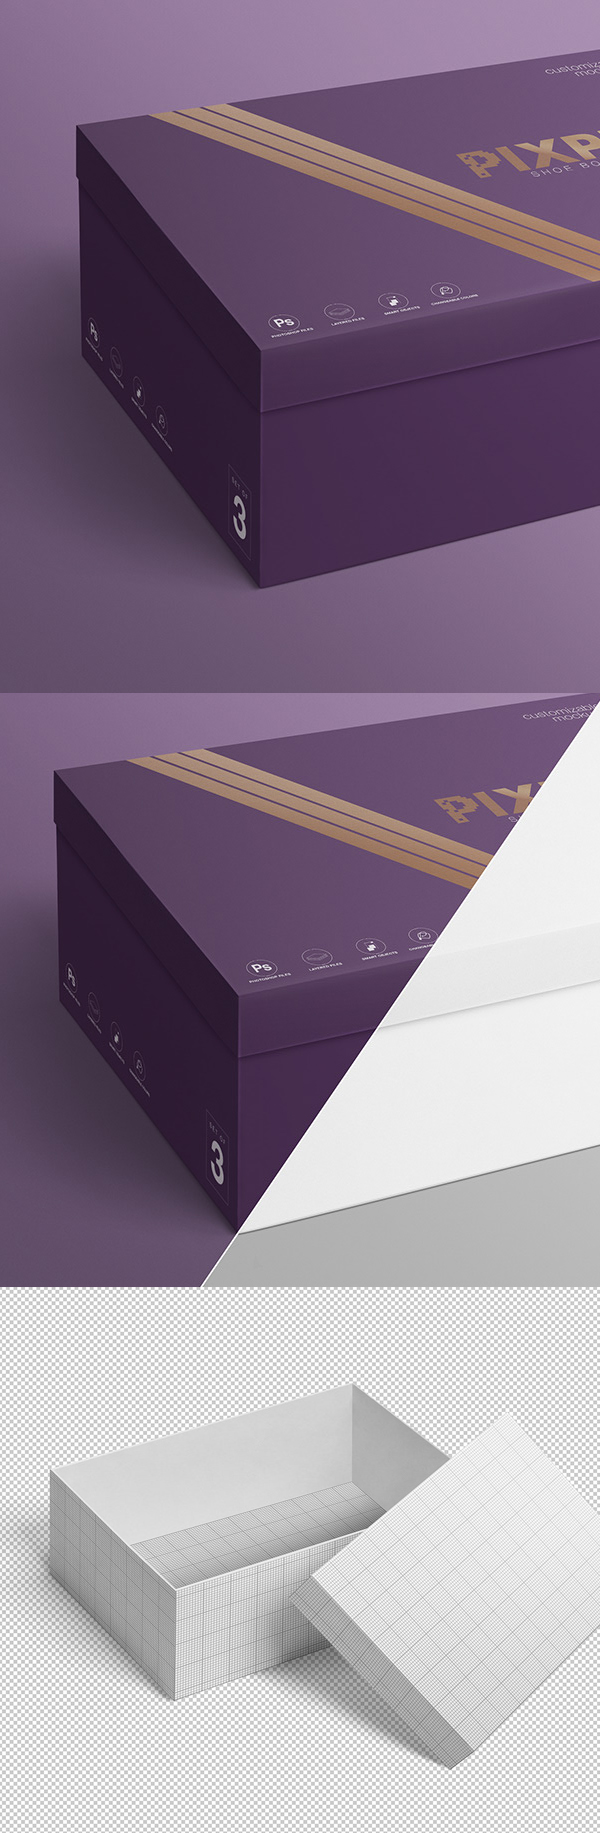 Free shoebox mockup set